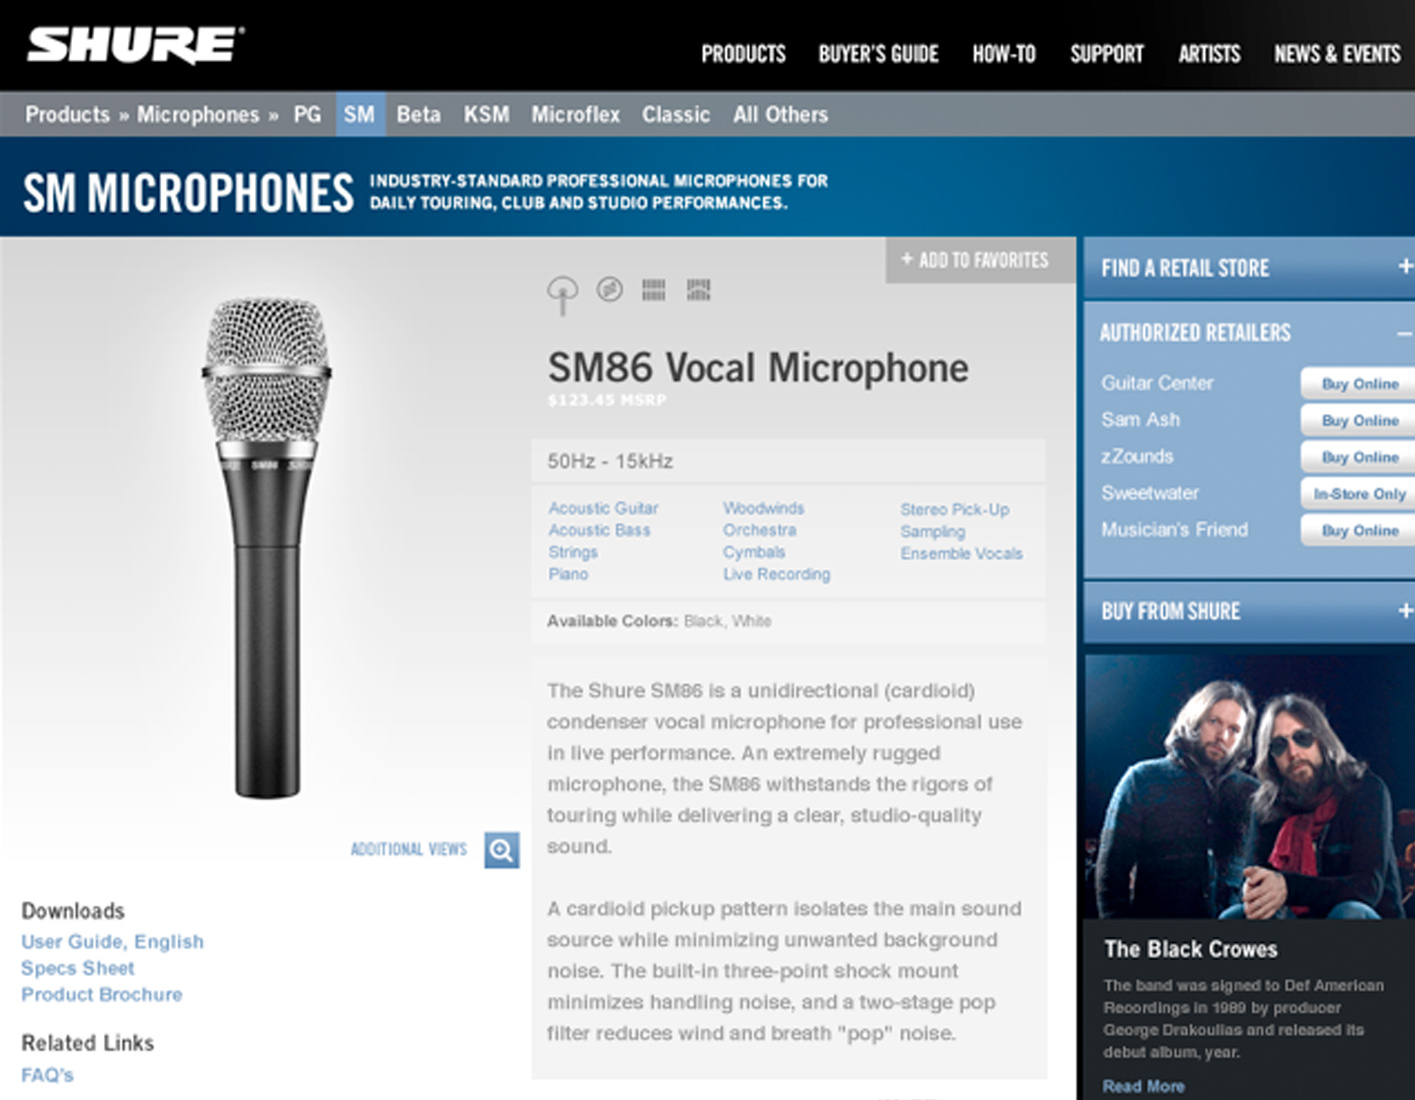 Shure product detail page